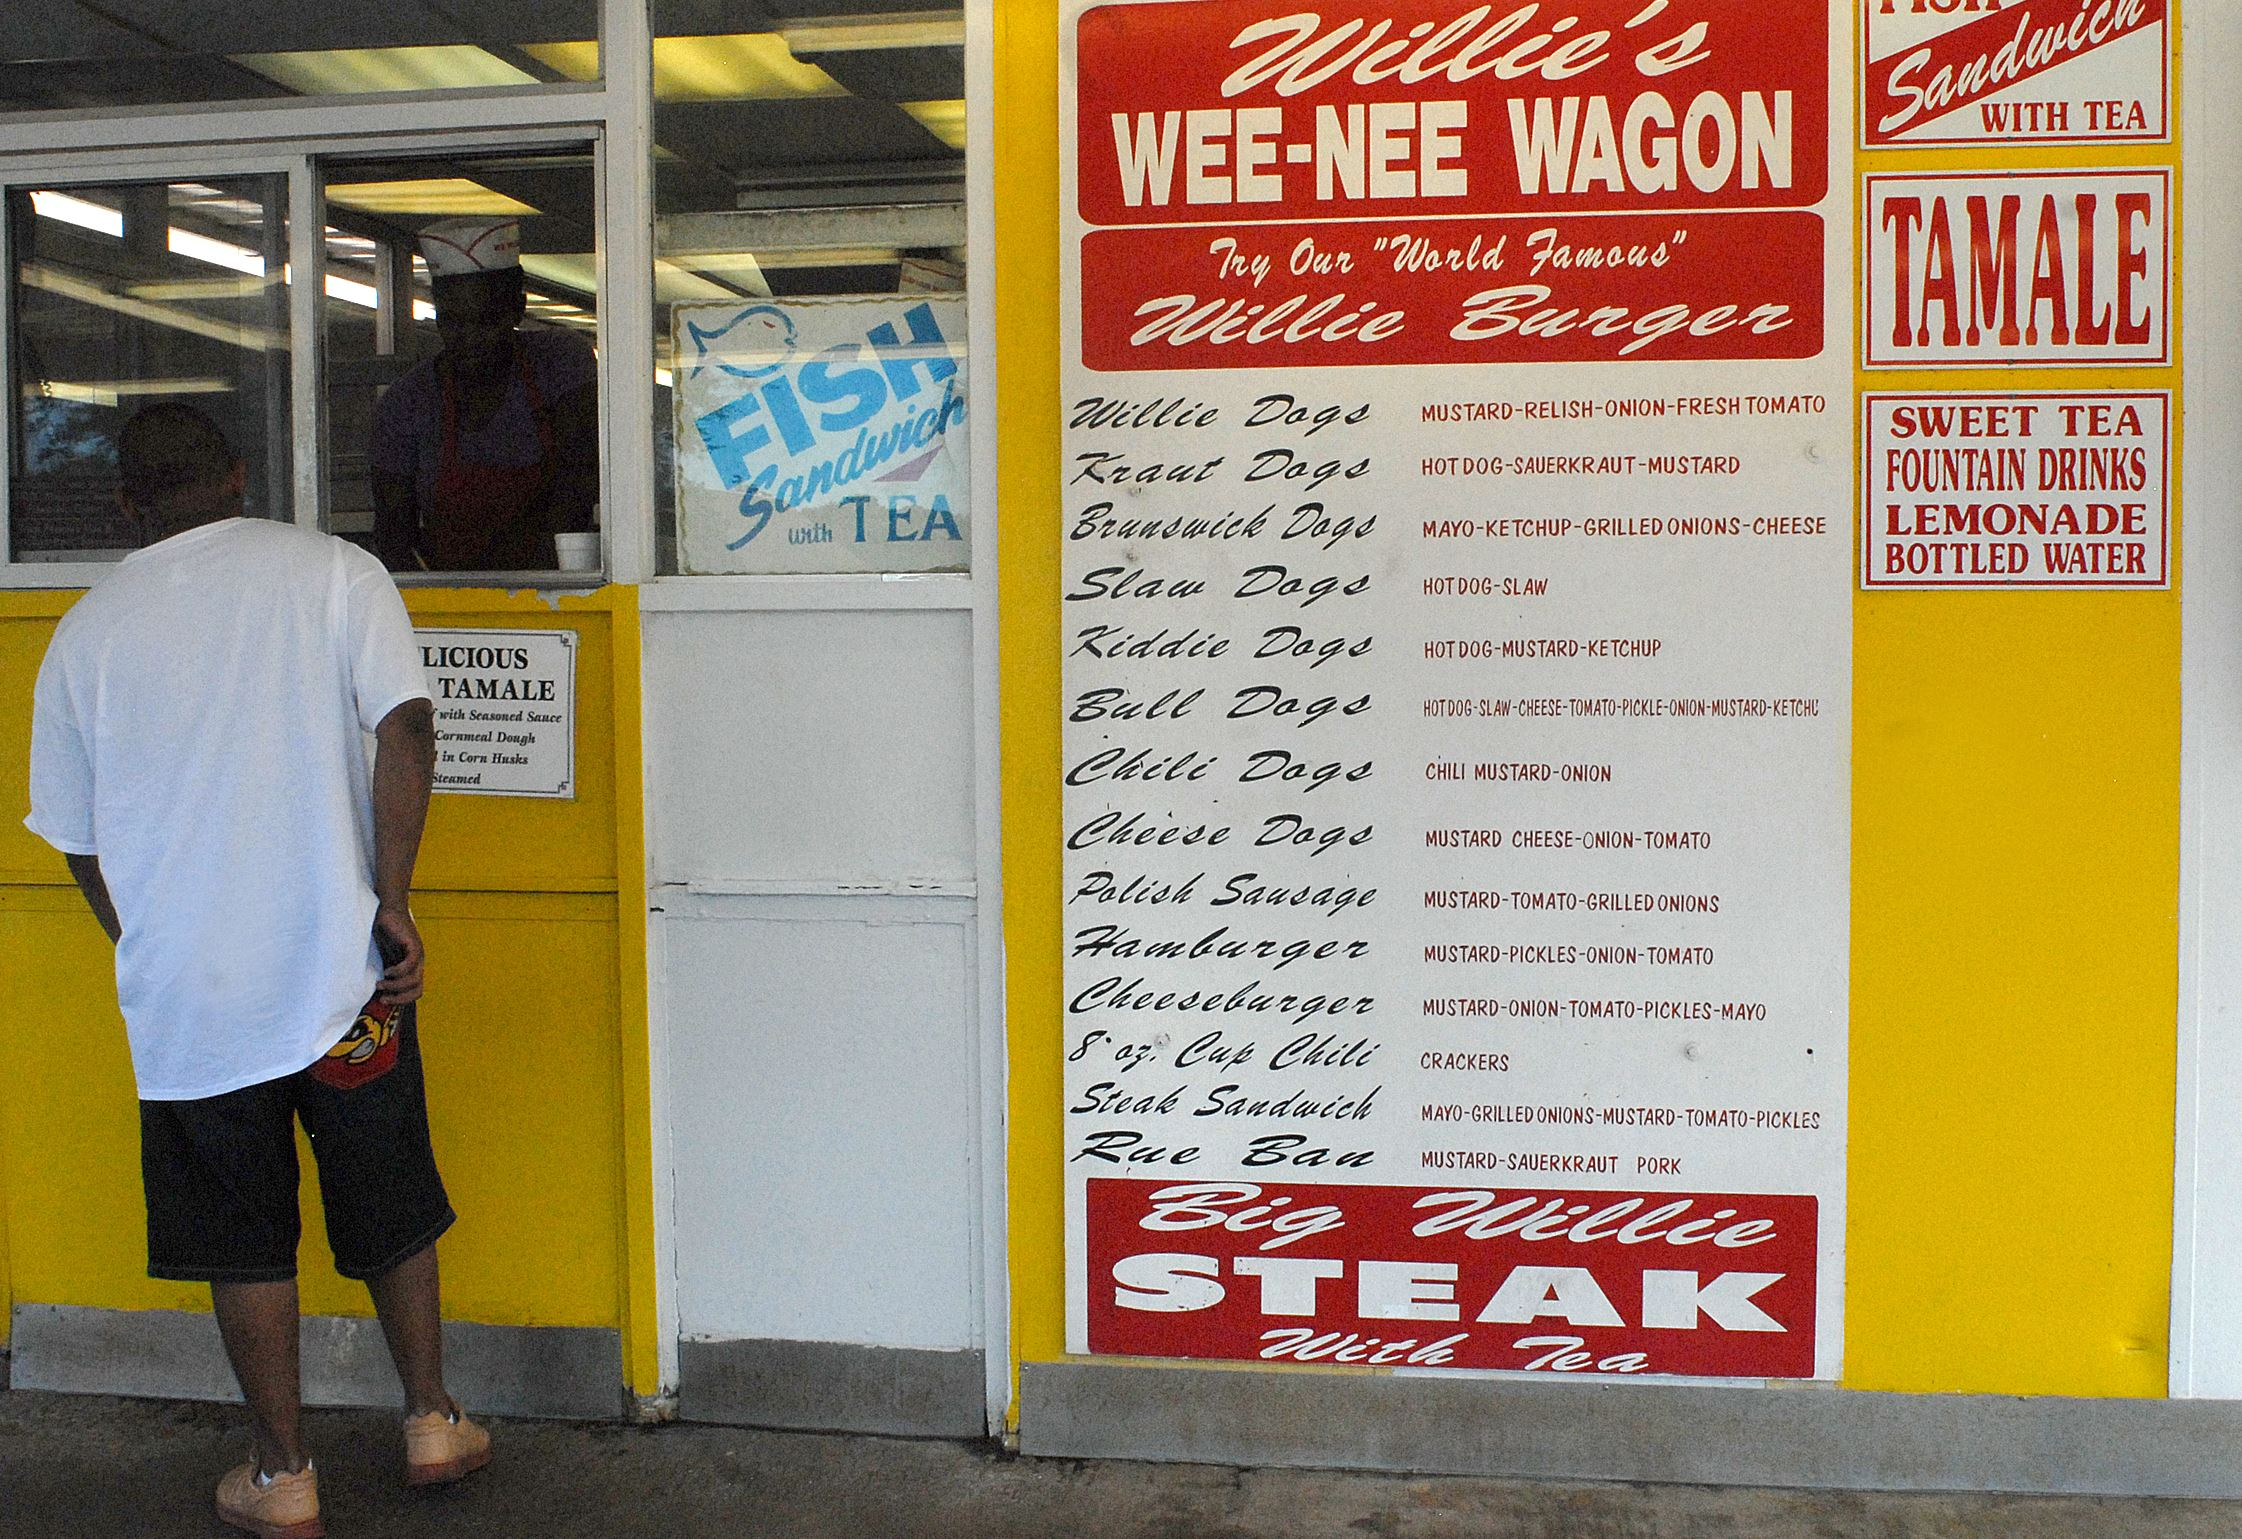 20131216lrdinefood03 The menu at Willie's Wee-Nee Wagon in Brunswick, Georgia.